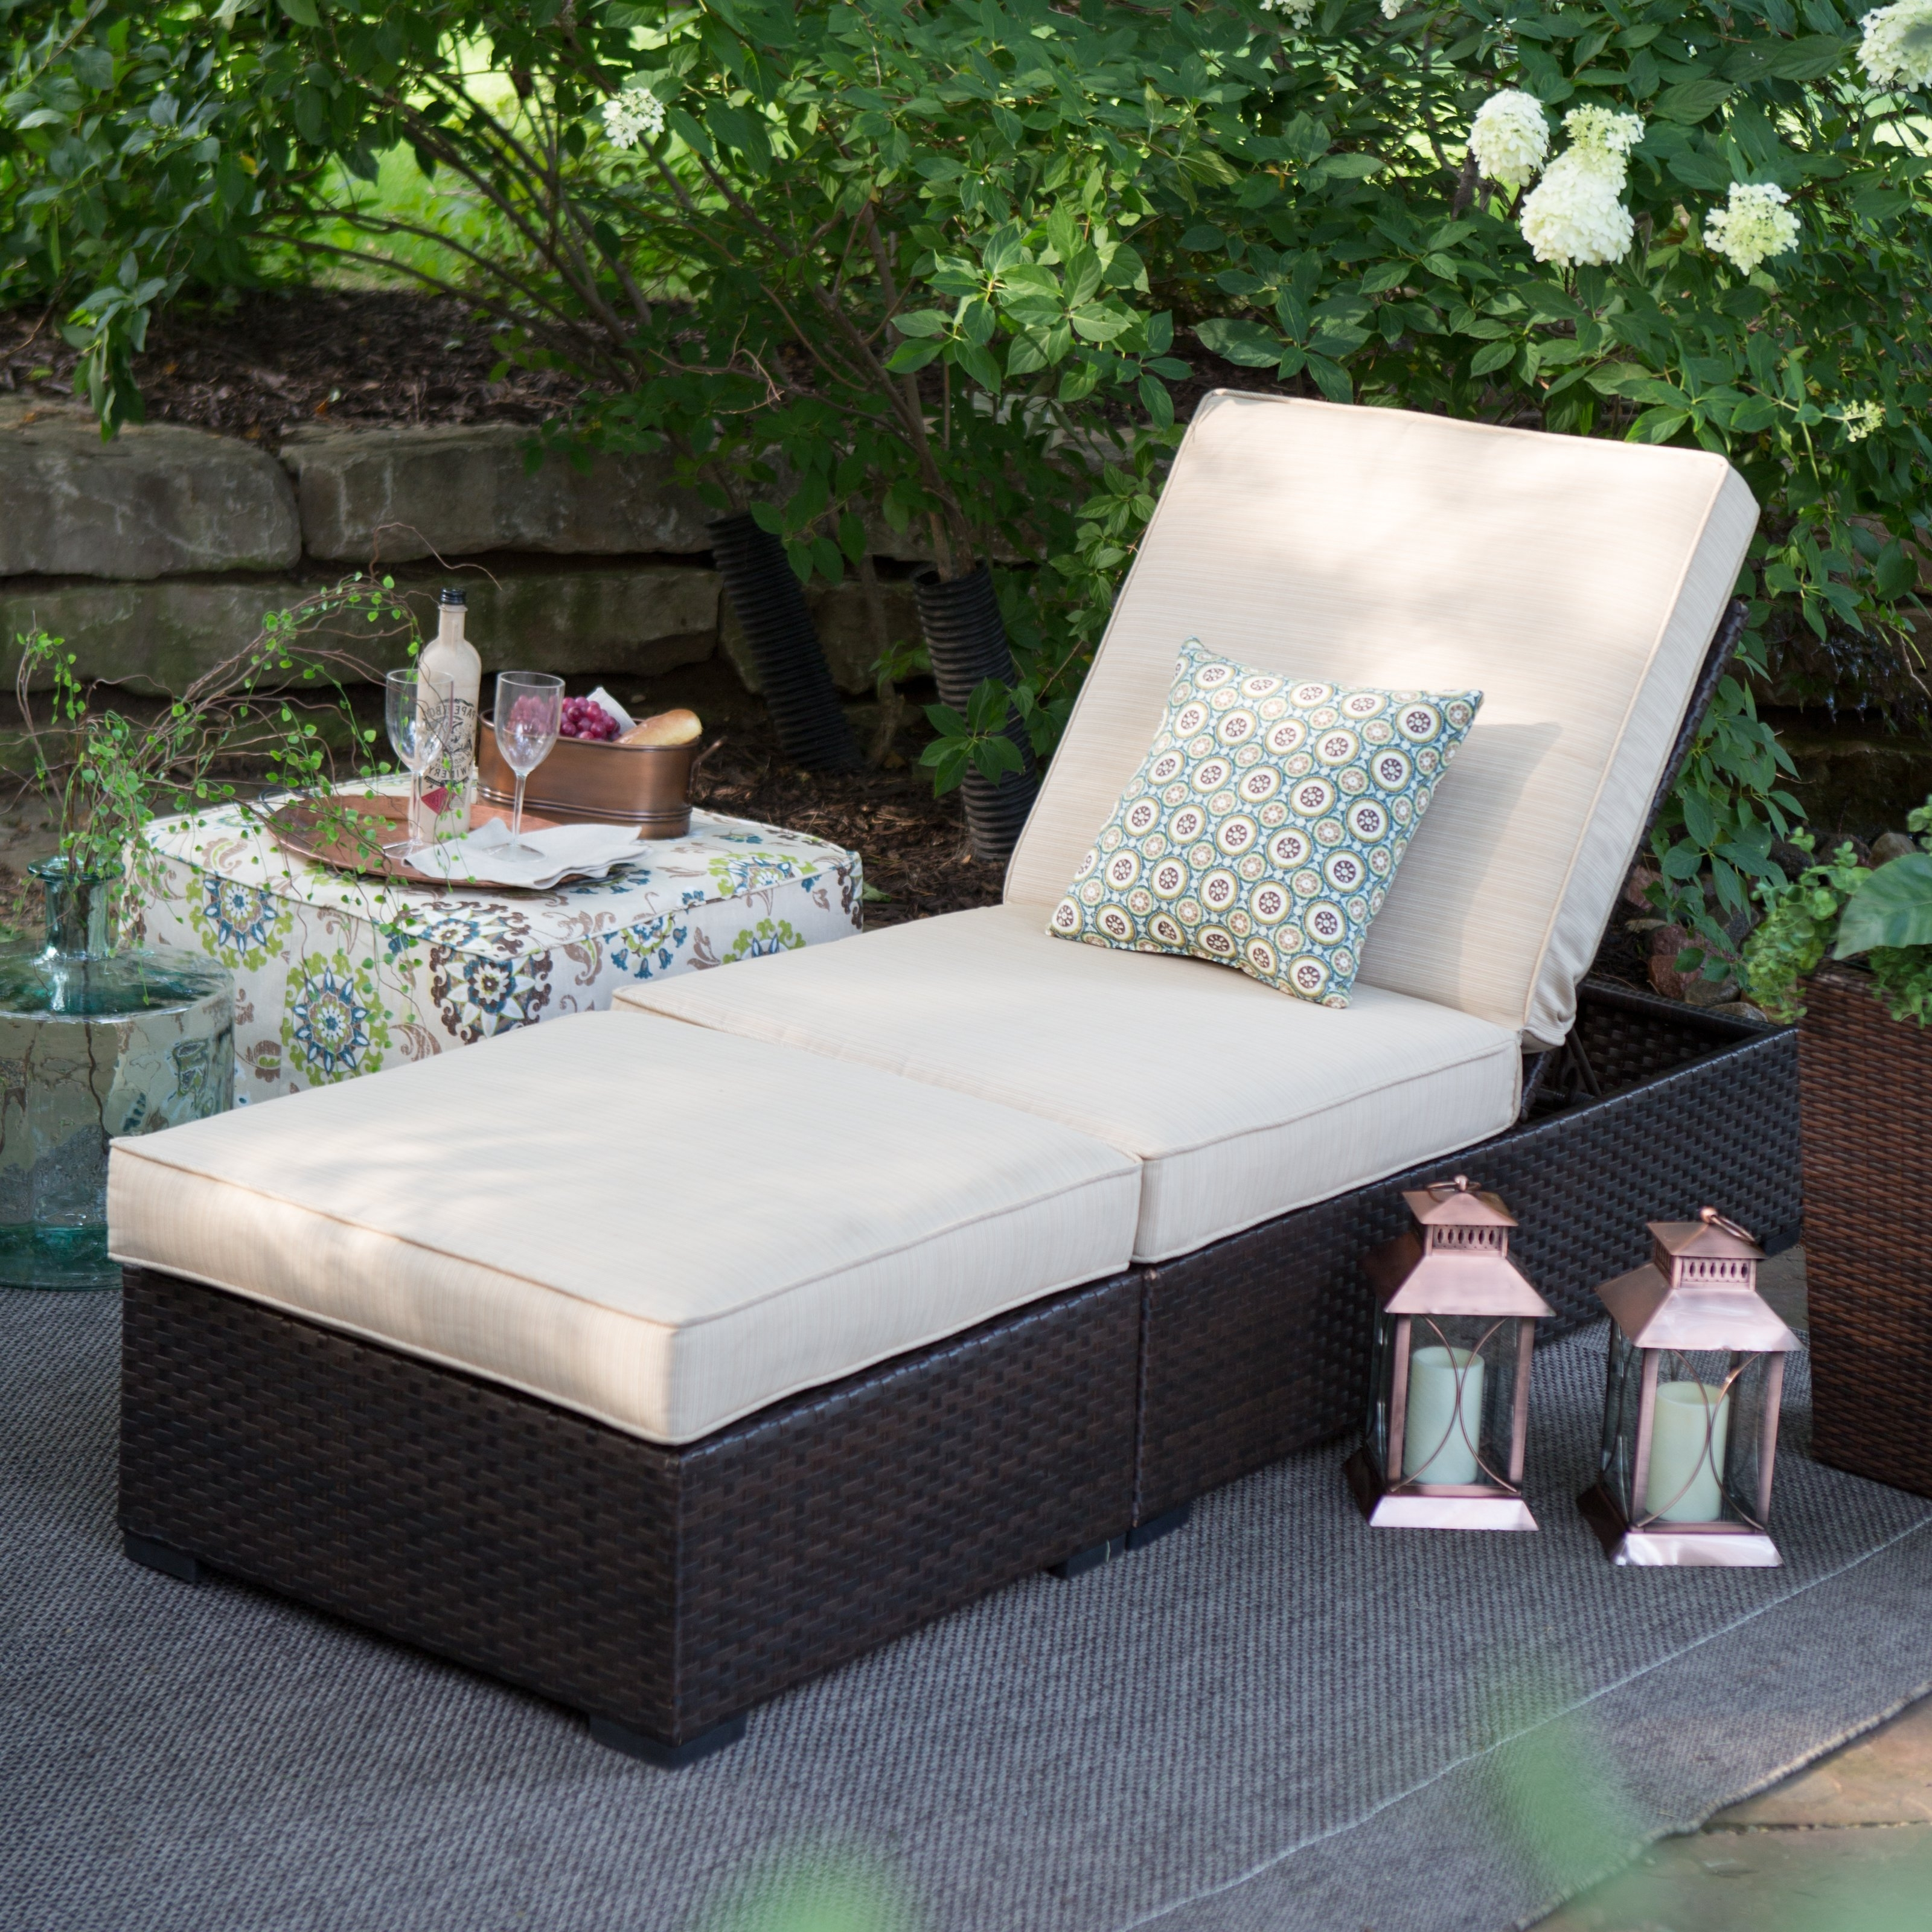 Newest Wicker Chaise Lounges Intended For Belham Living Marcella Wide Wicker Chaise Lounge With Ottoman (View 6 of 15)